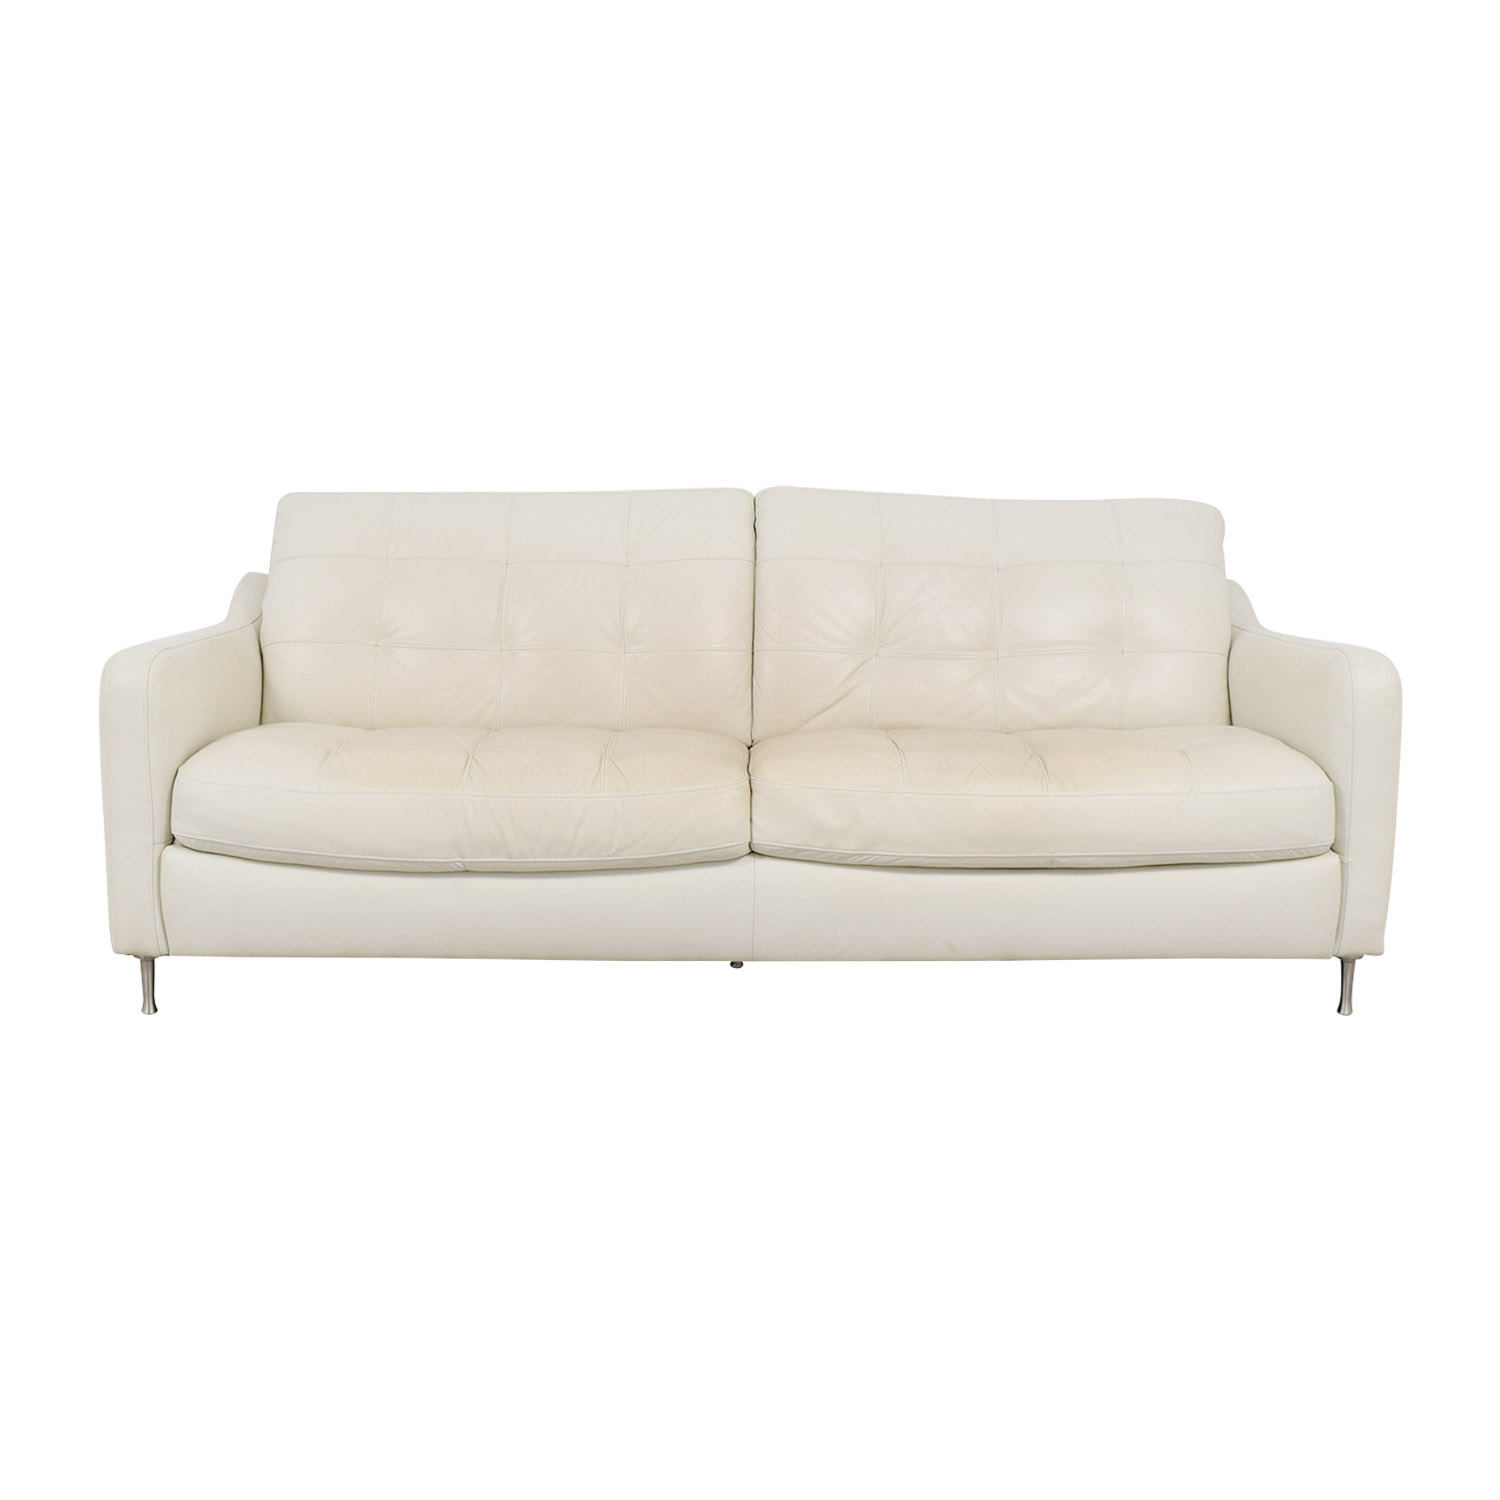 10 Best Collection Of Off White Leather Sofas: Sofa Natuzzi Sofas In Leather And Fabric Natuzzi Italia